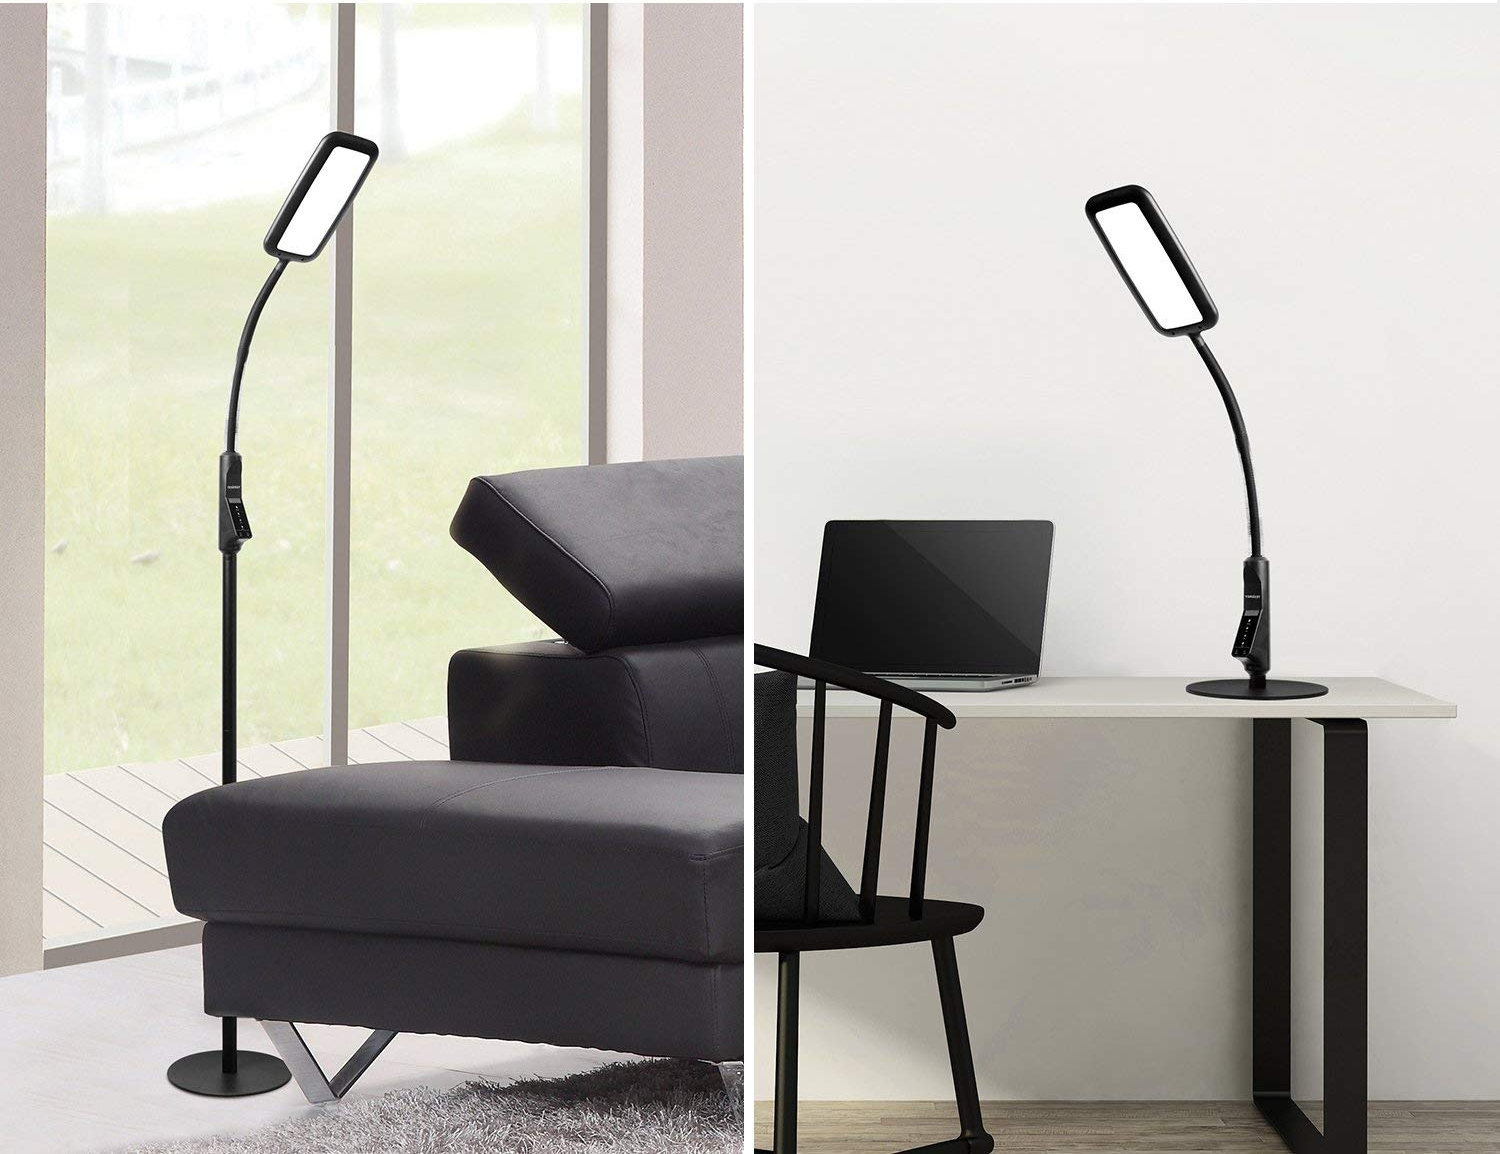 Tenergy LED 2-in-1 Floor Lamp/Desk Lamp